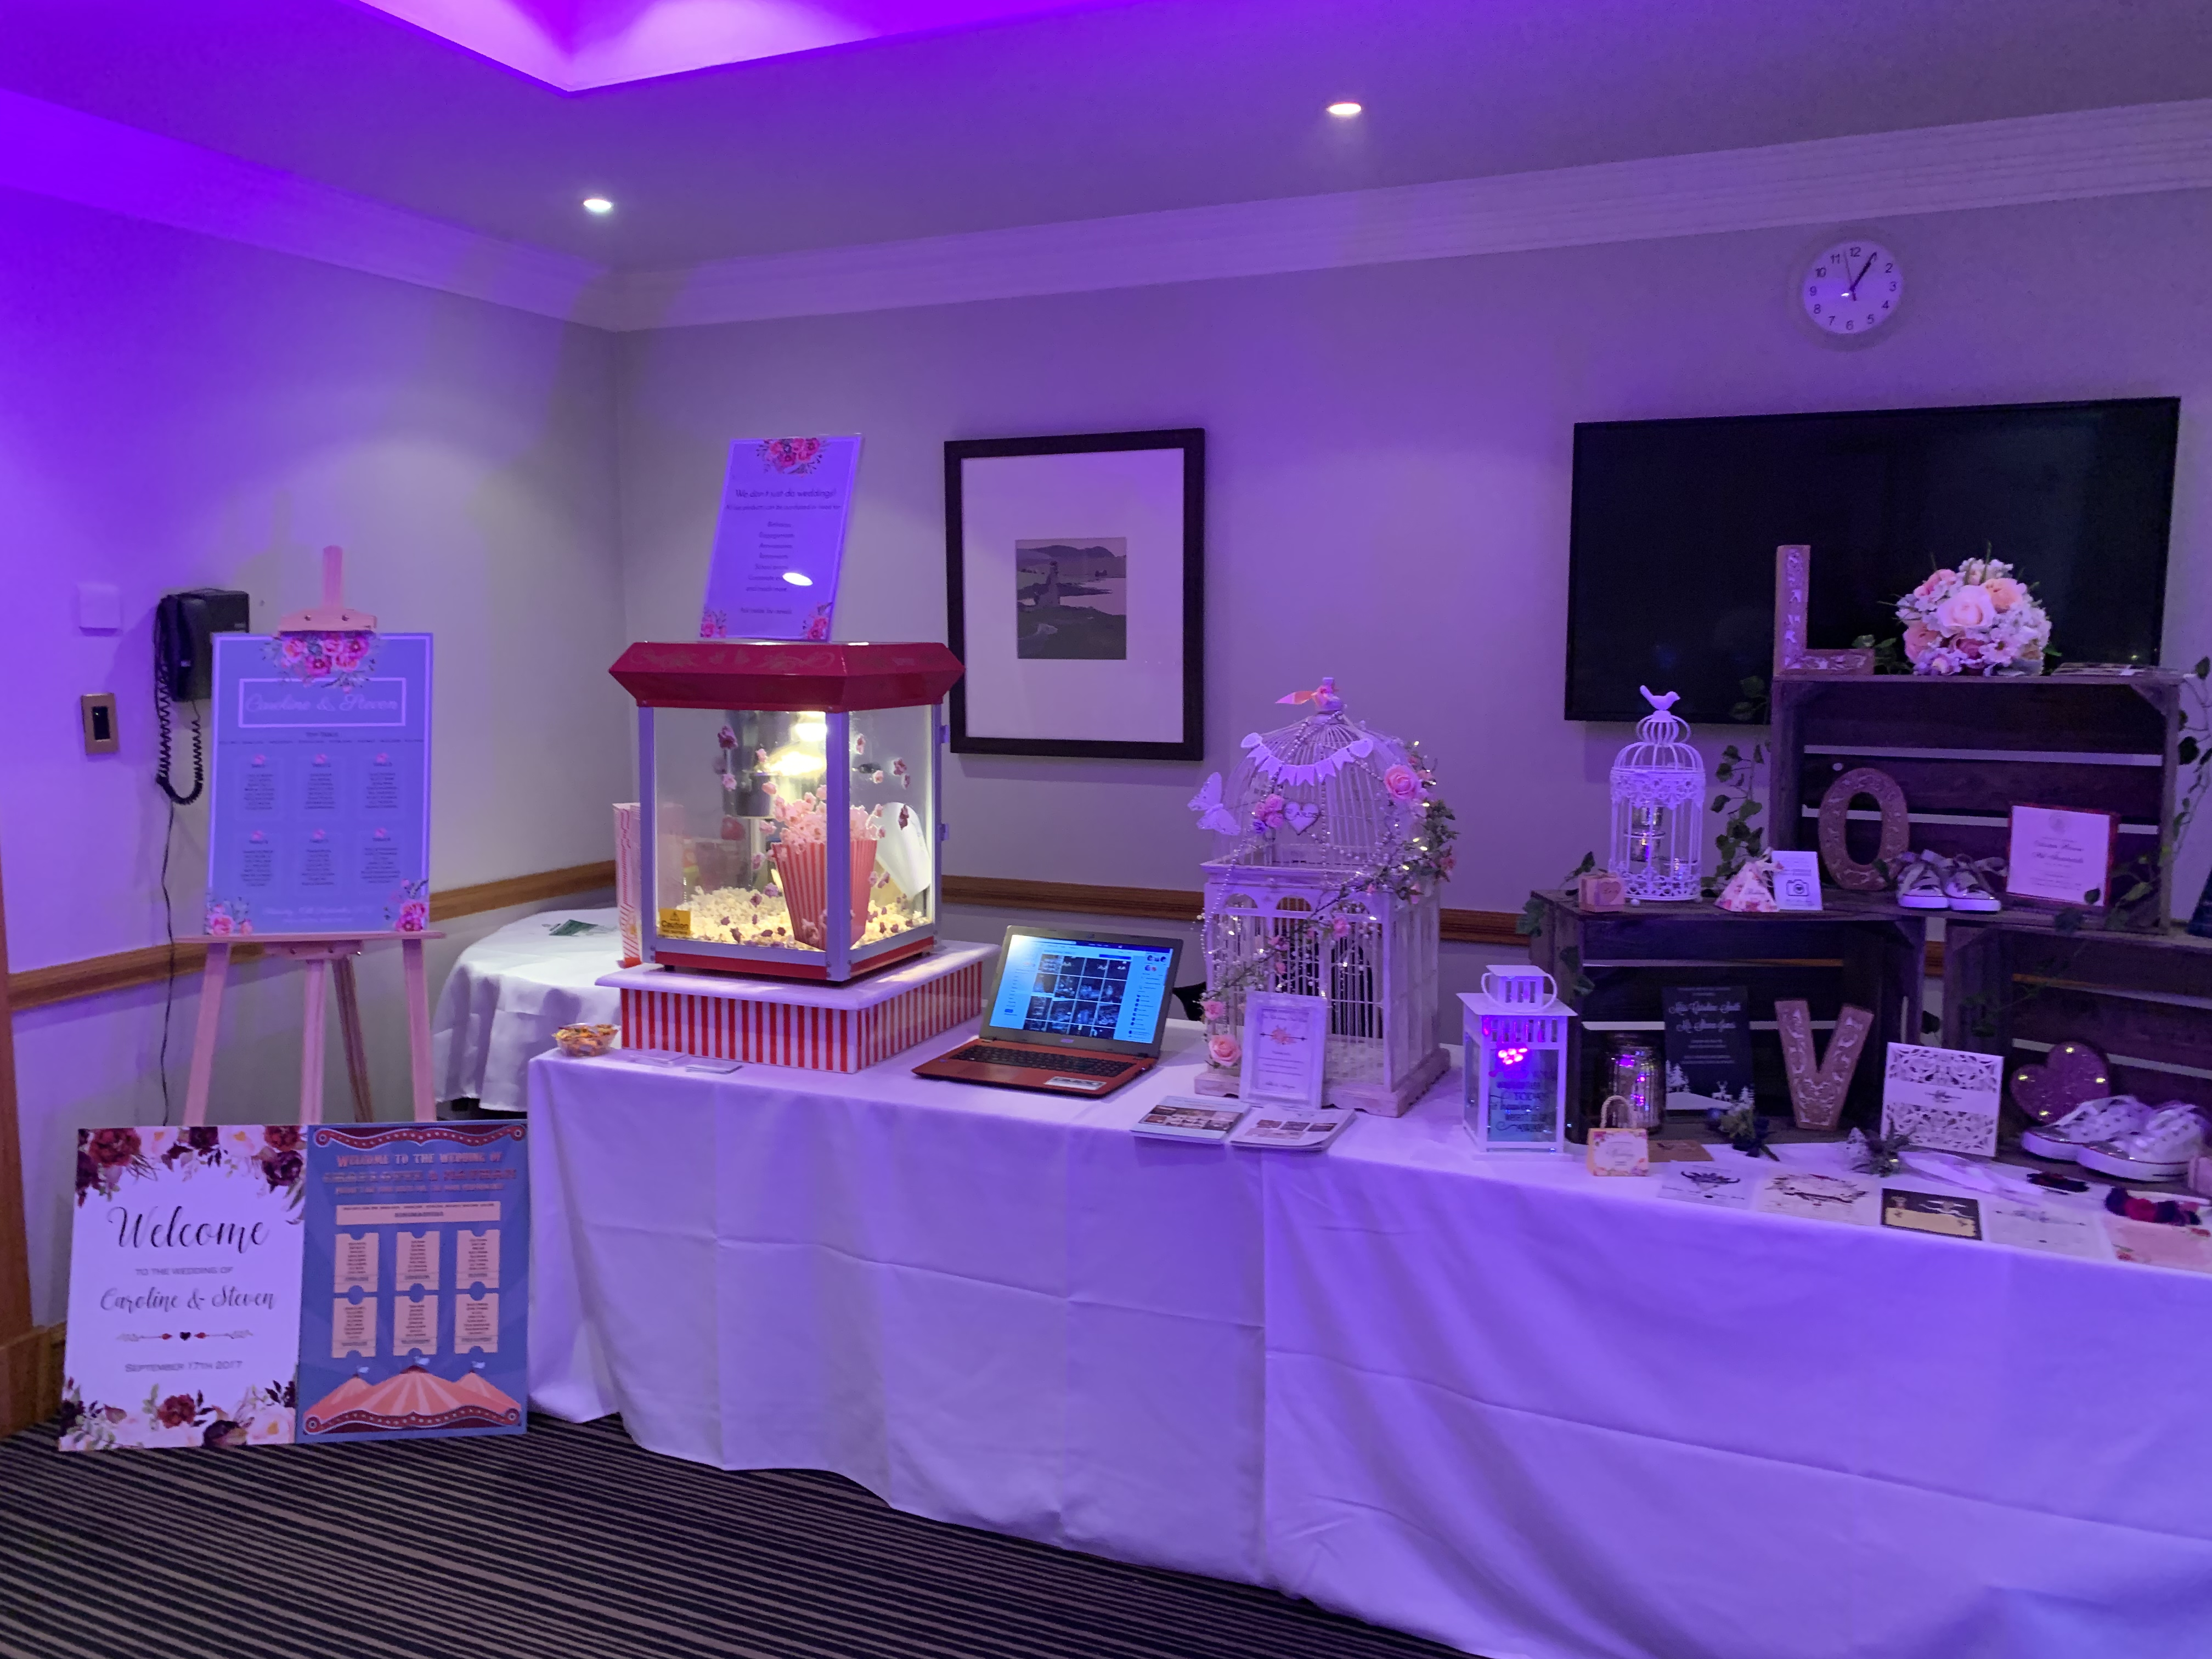 Doubletree Dundee display